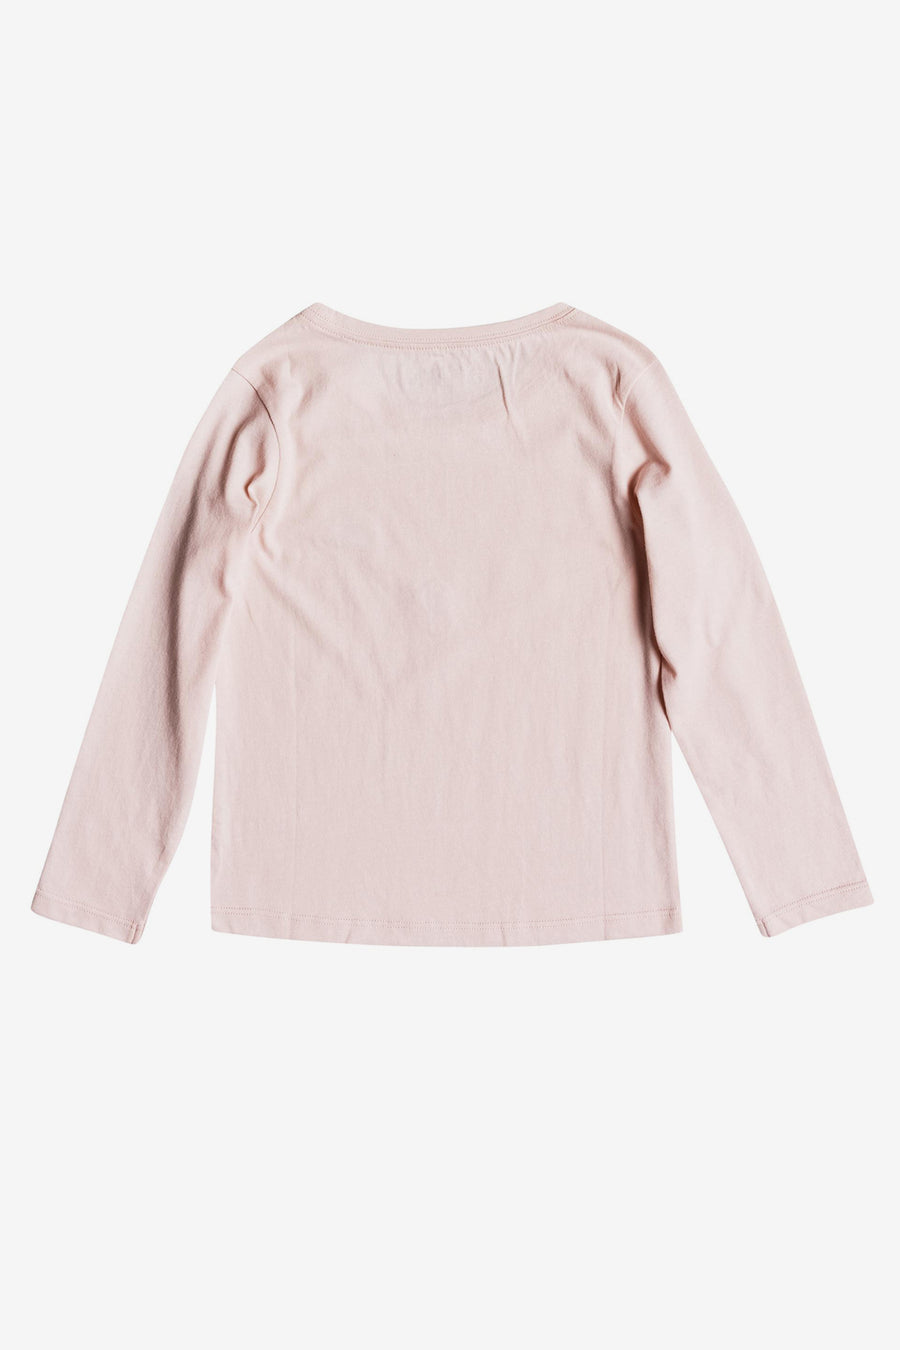 Roxy Never Ages Game Over Long Sleeve Tee - Peach Whip